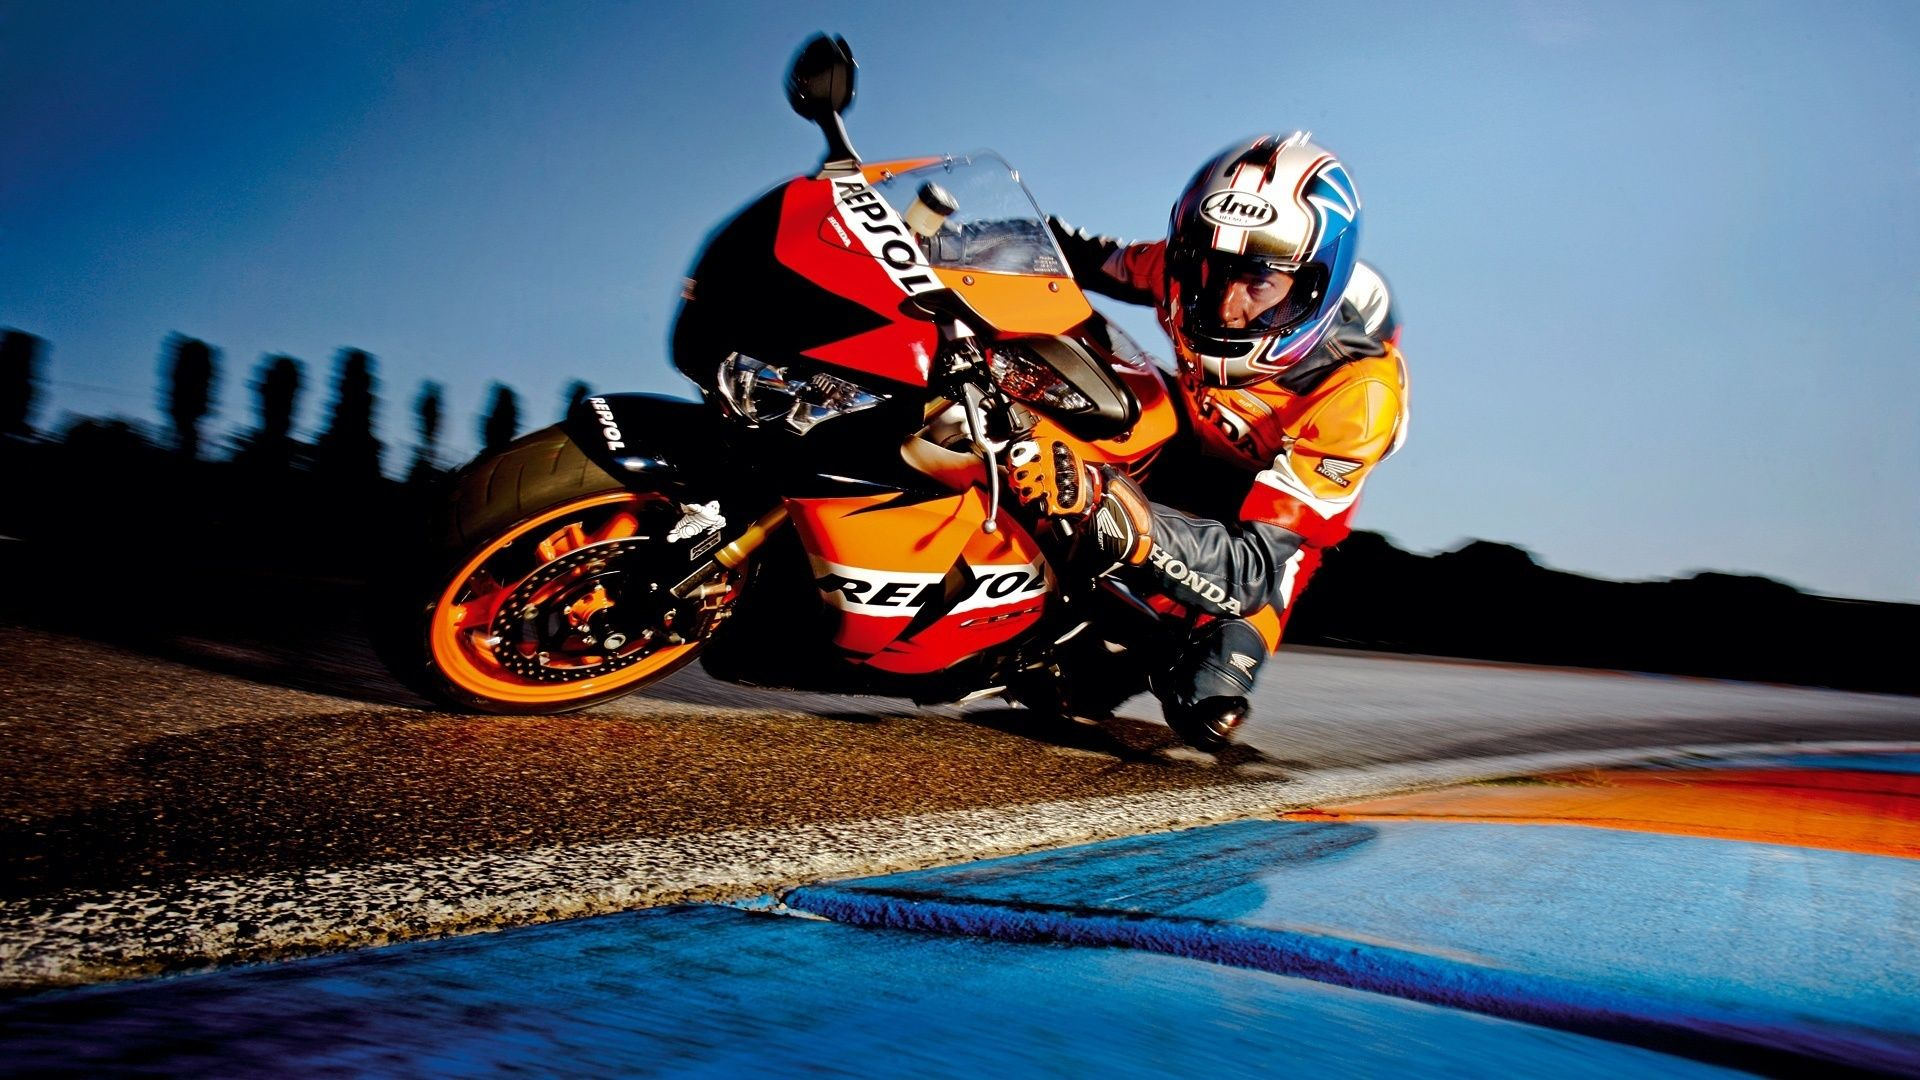 racing bikes wallpapers 2 | racing bikes wallpapers | pinterest